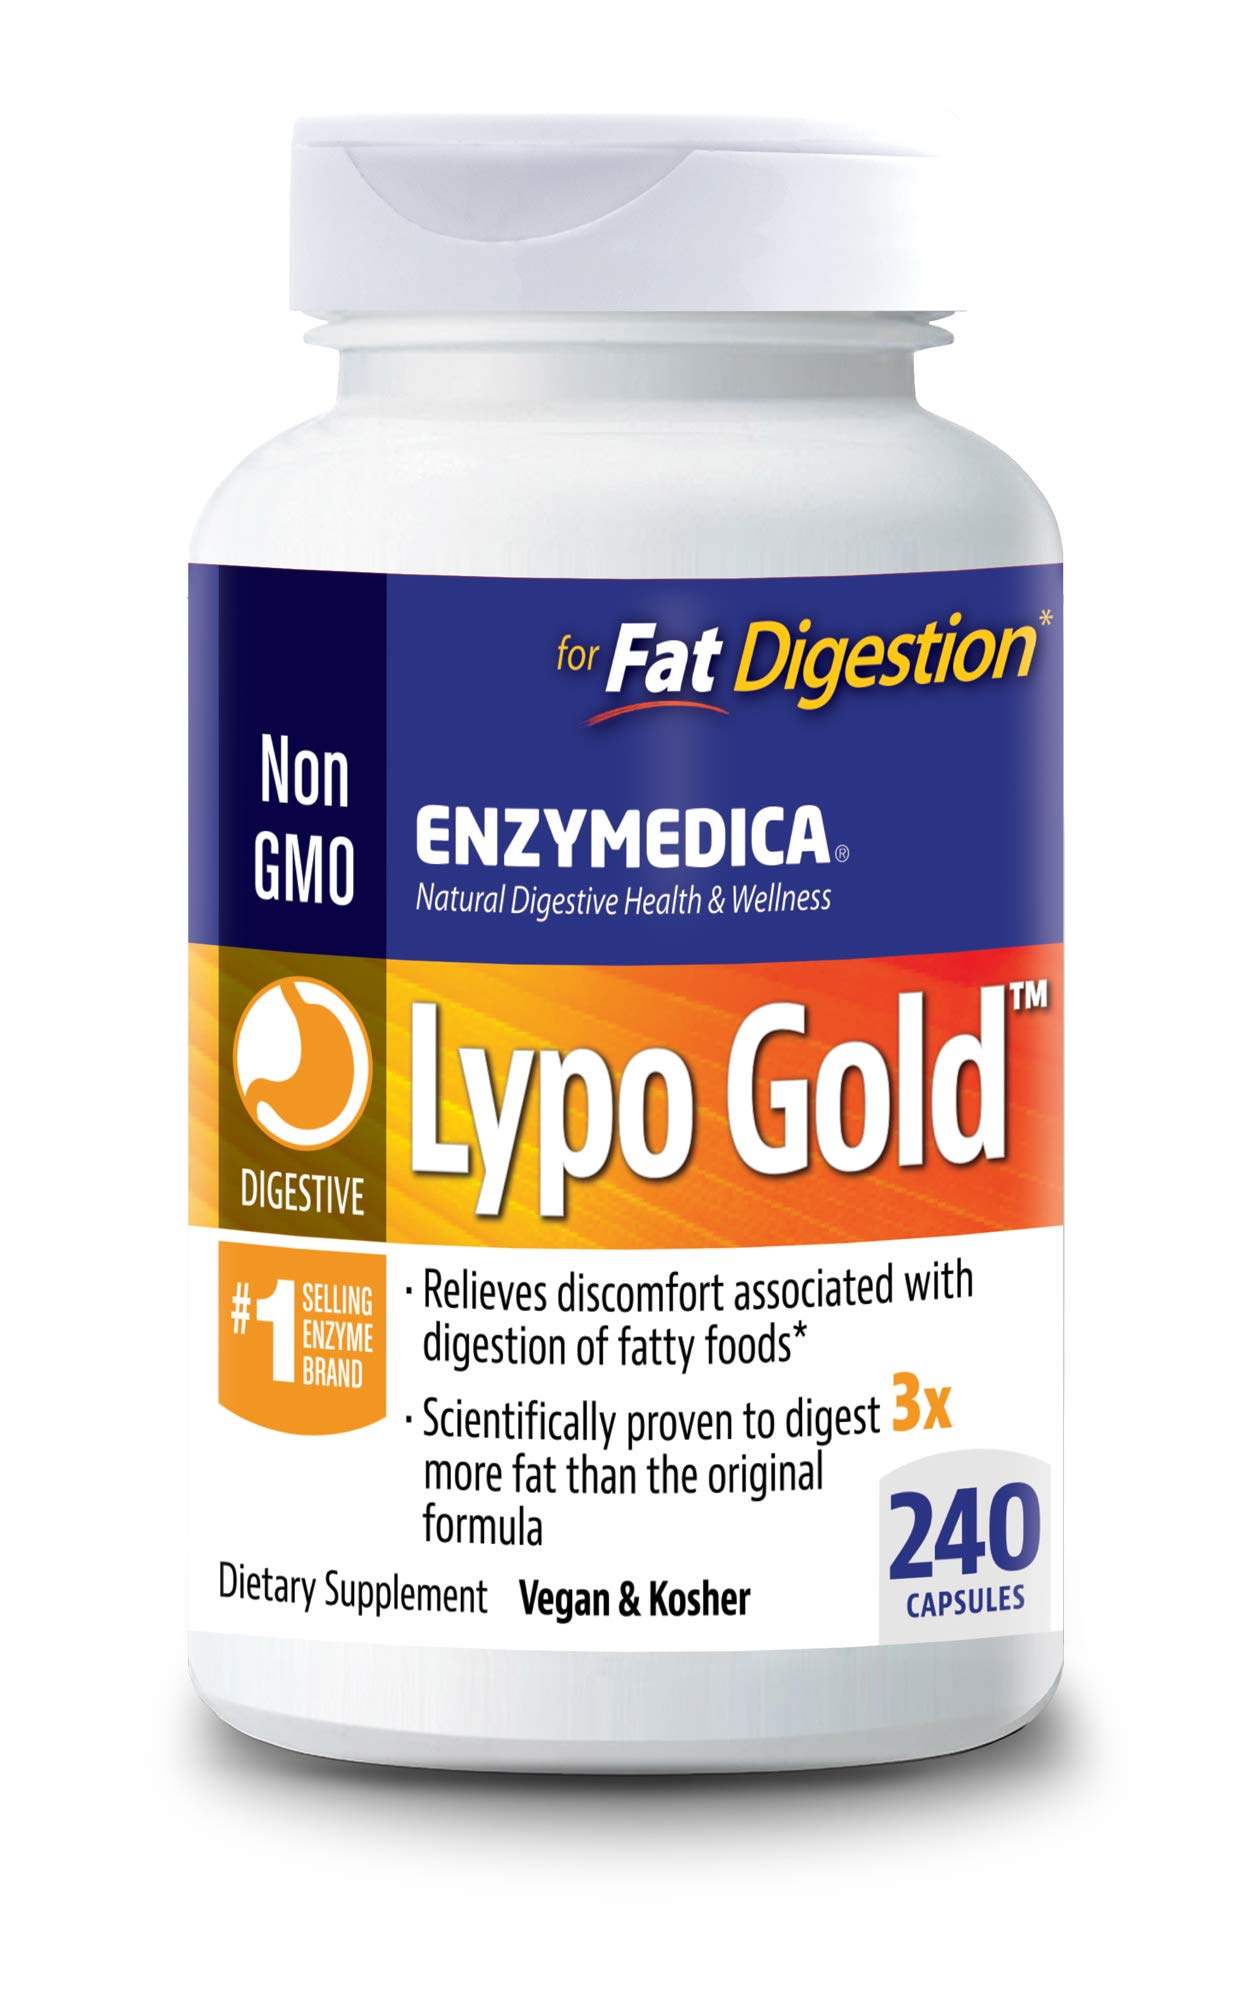 Enzymedica - Lypo Gold, Dietary Supplement to Support Fat Digestion, Vegan, Gluten Free, Non-GMO, 240 Capsules (240 Servings)